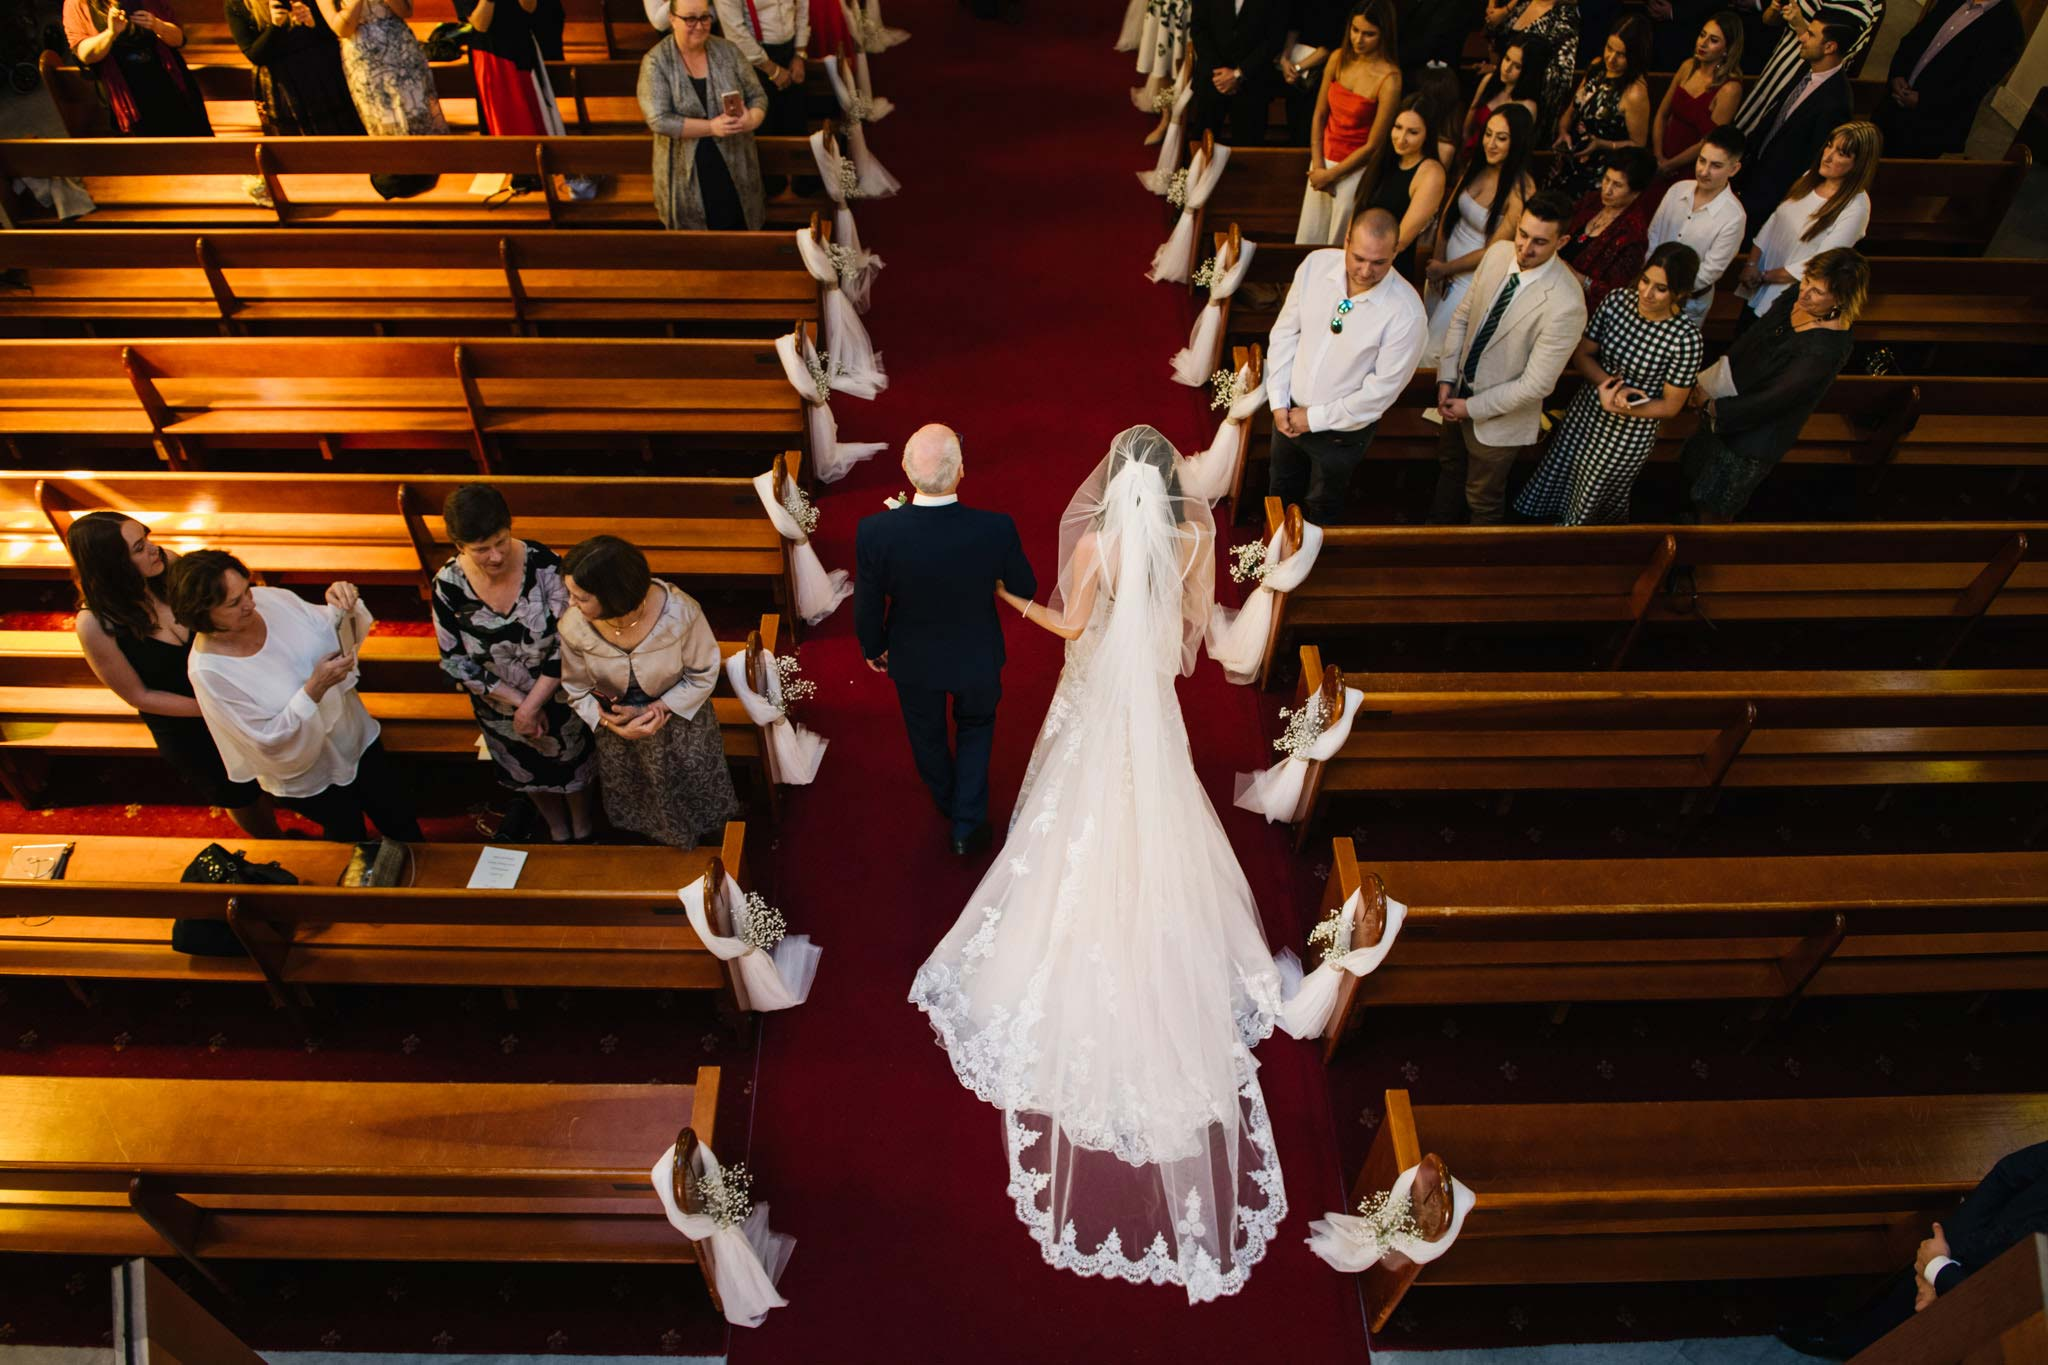 Birds eye view of bride and father entering the church